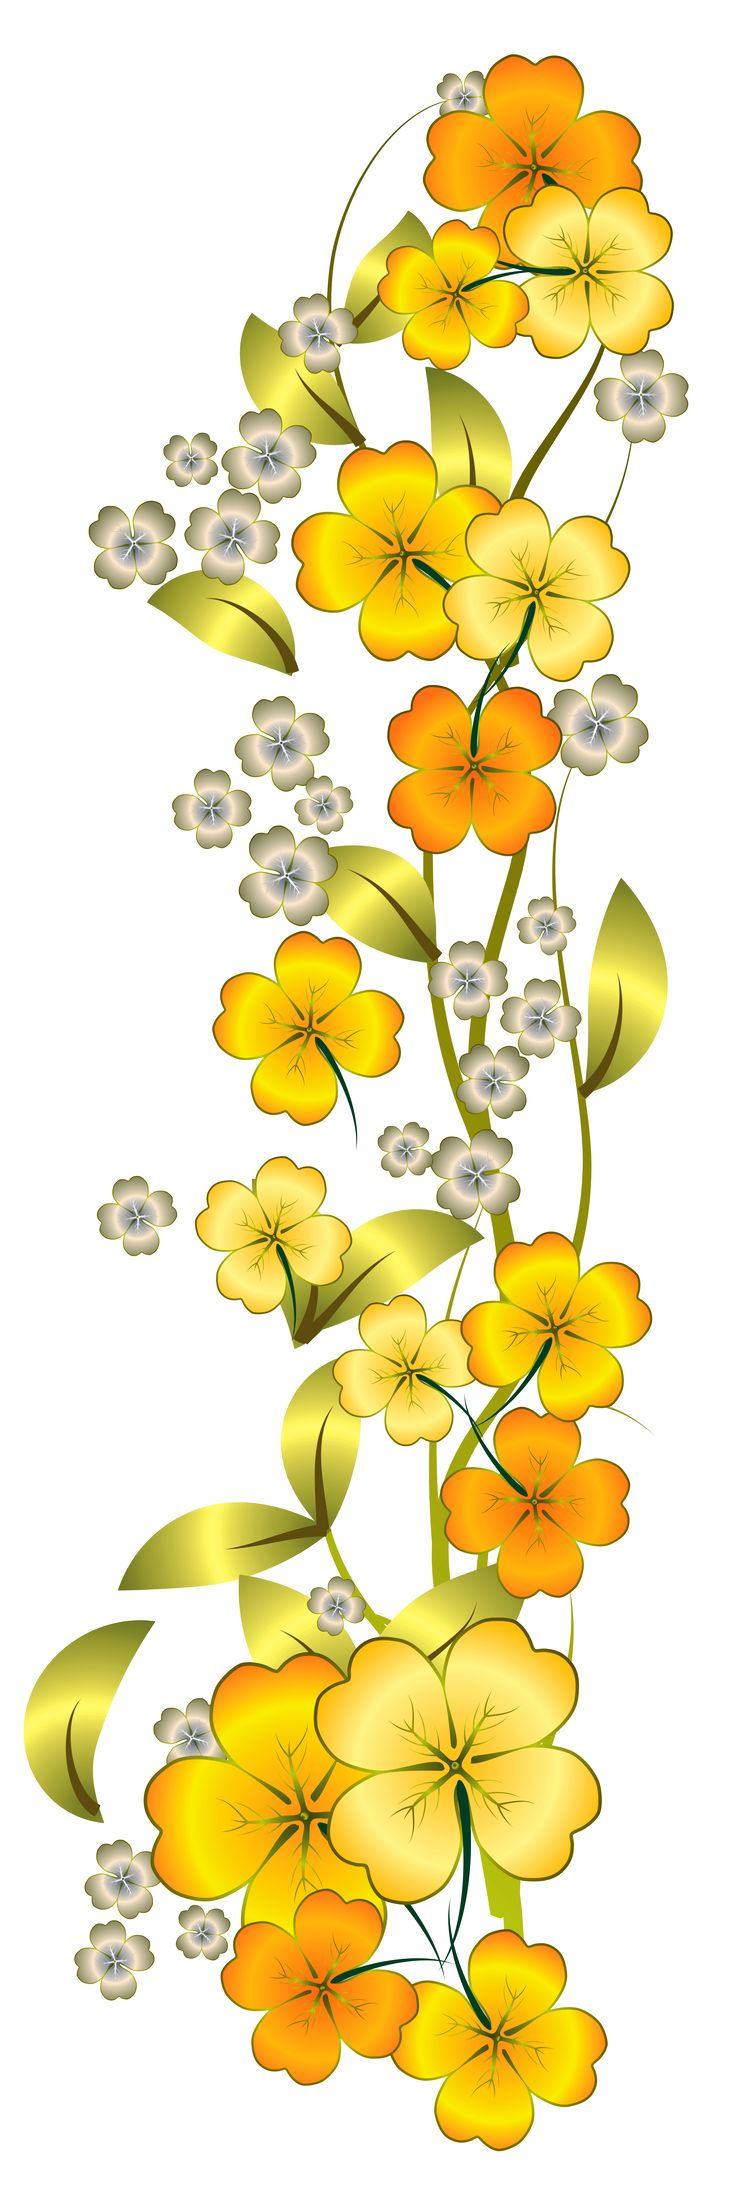 Church flower clipart church flower image church flowers graphic - Yellow Flower Decor Png Clipart